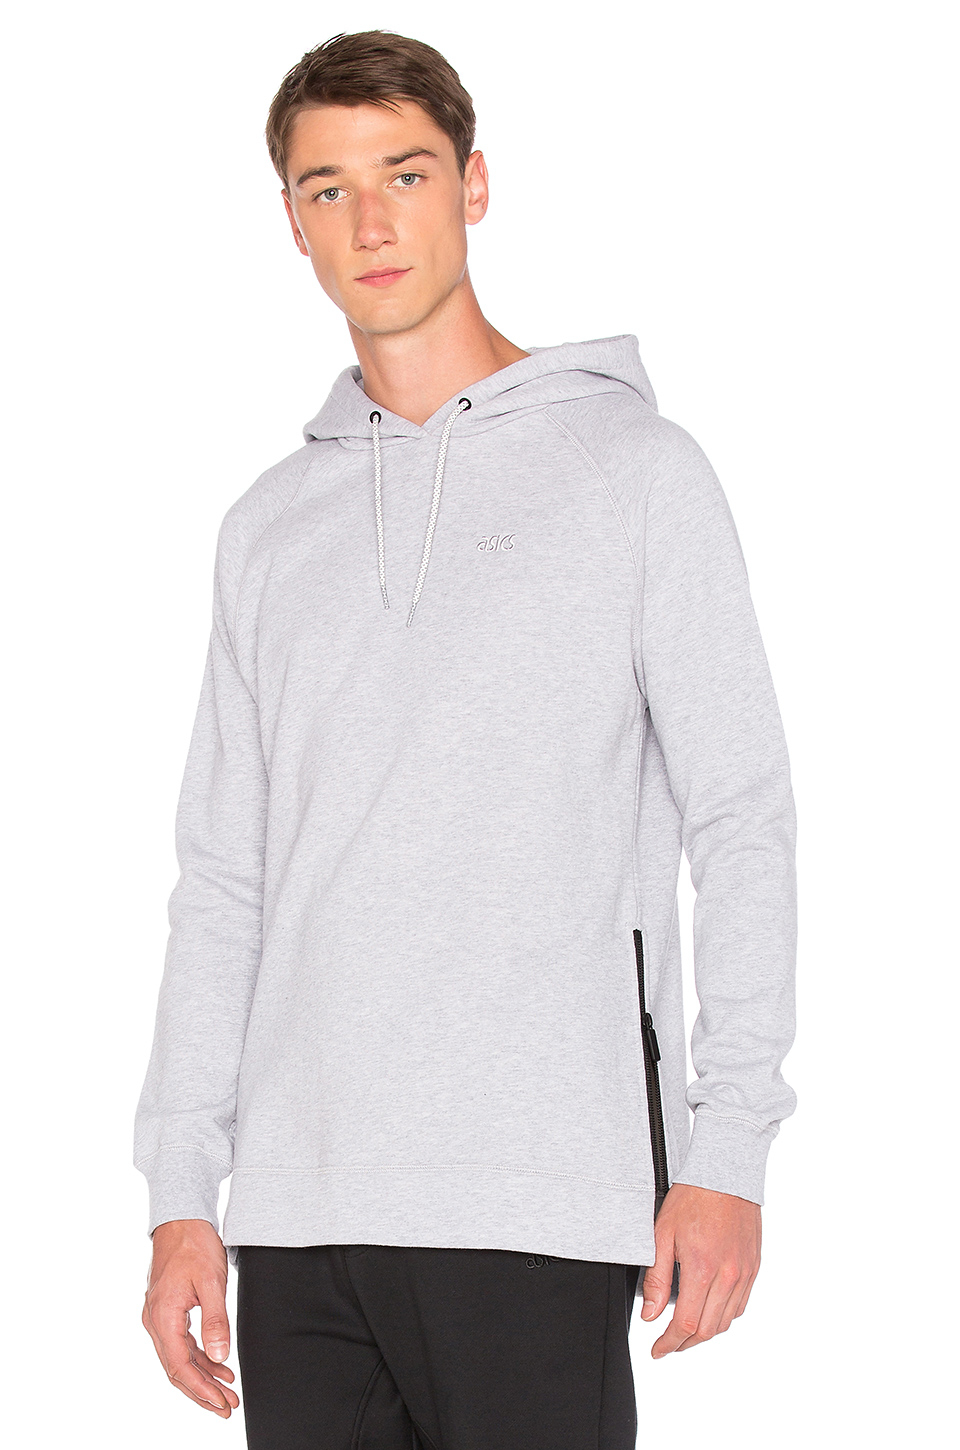 Shop our collection of hoodies, all integrated with a patented vapor delivery system that provides discreet and convenient access to your favorite vape pen, e-cigarette or closed pod system. Vape anything. Vape anywhere!